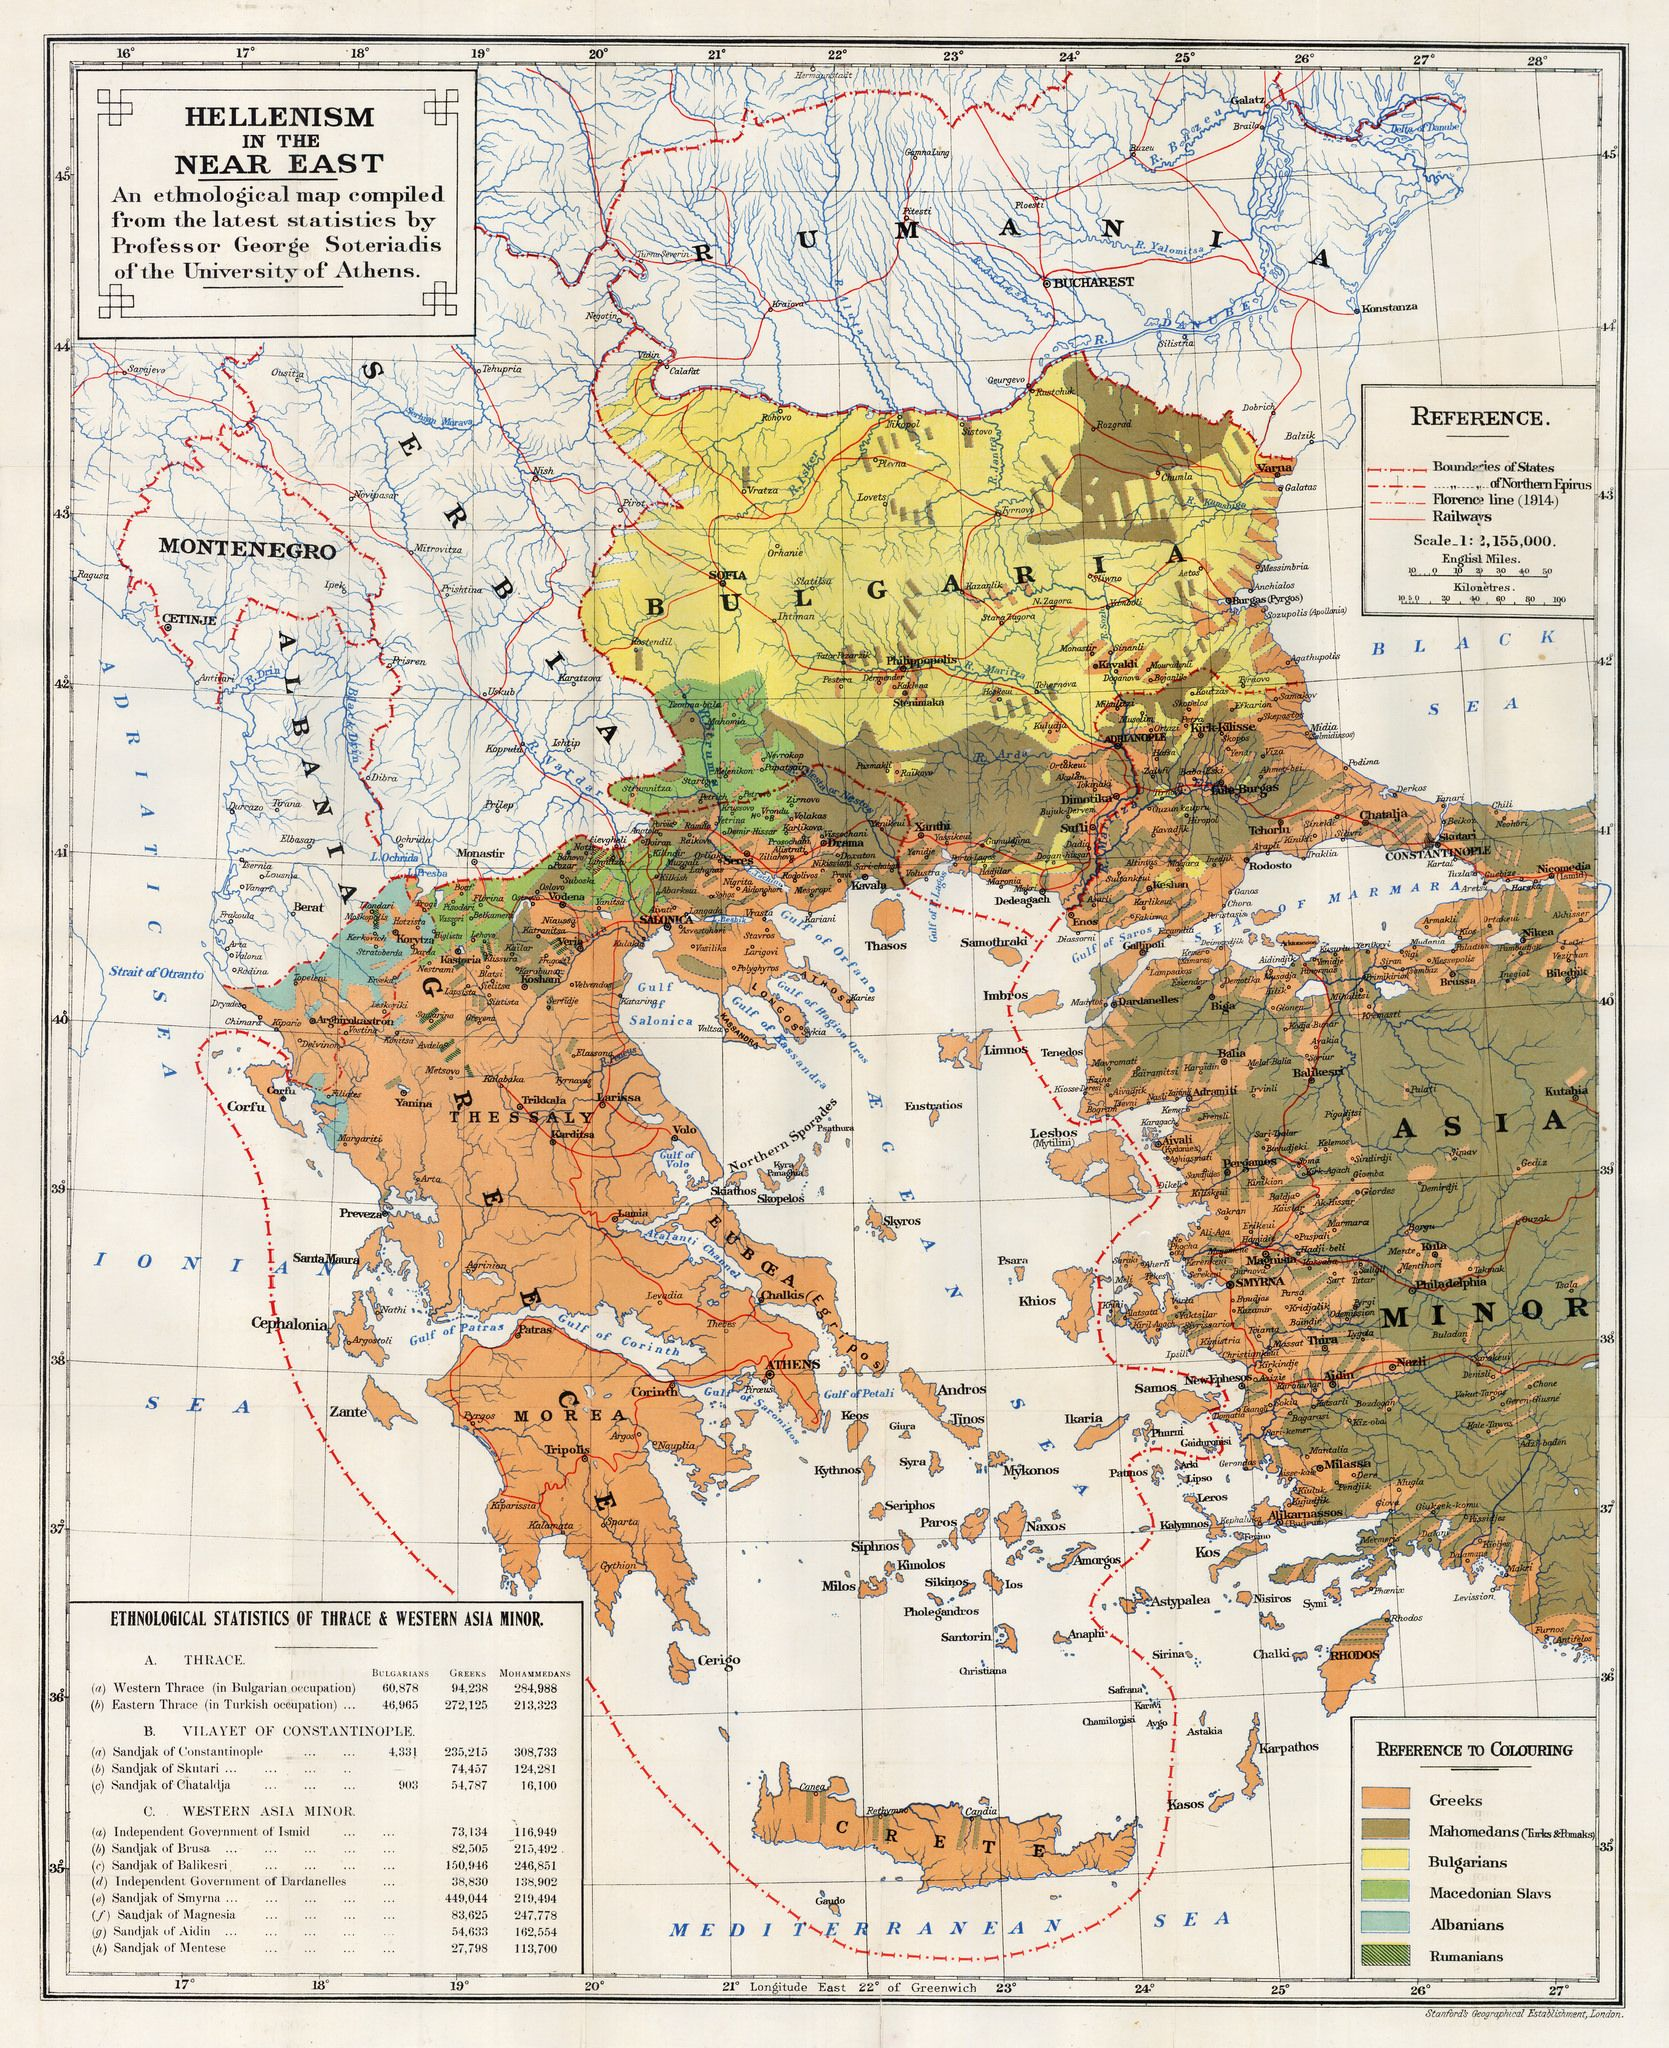 Ethnological map of Greece, 1918   Map, Historical maps, Greece on portugal map, norway map, poland map, ireland map, germany map, sparta map, australia map, turkey map, denmark map, spain map, rome map, serbia map, japan map, china map, france map, sri lanka map, united kingdom map, crete map, greek map, africa map, peru map, europe map, mediterranean map, belgium map, ionian sea map, austria map, czech republic map, england map, italy map, canada map, iceland map, cyprus map, india map,